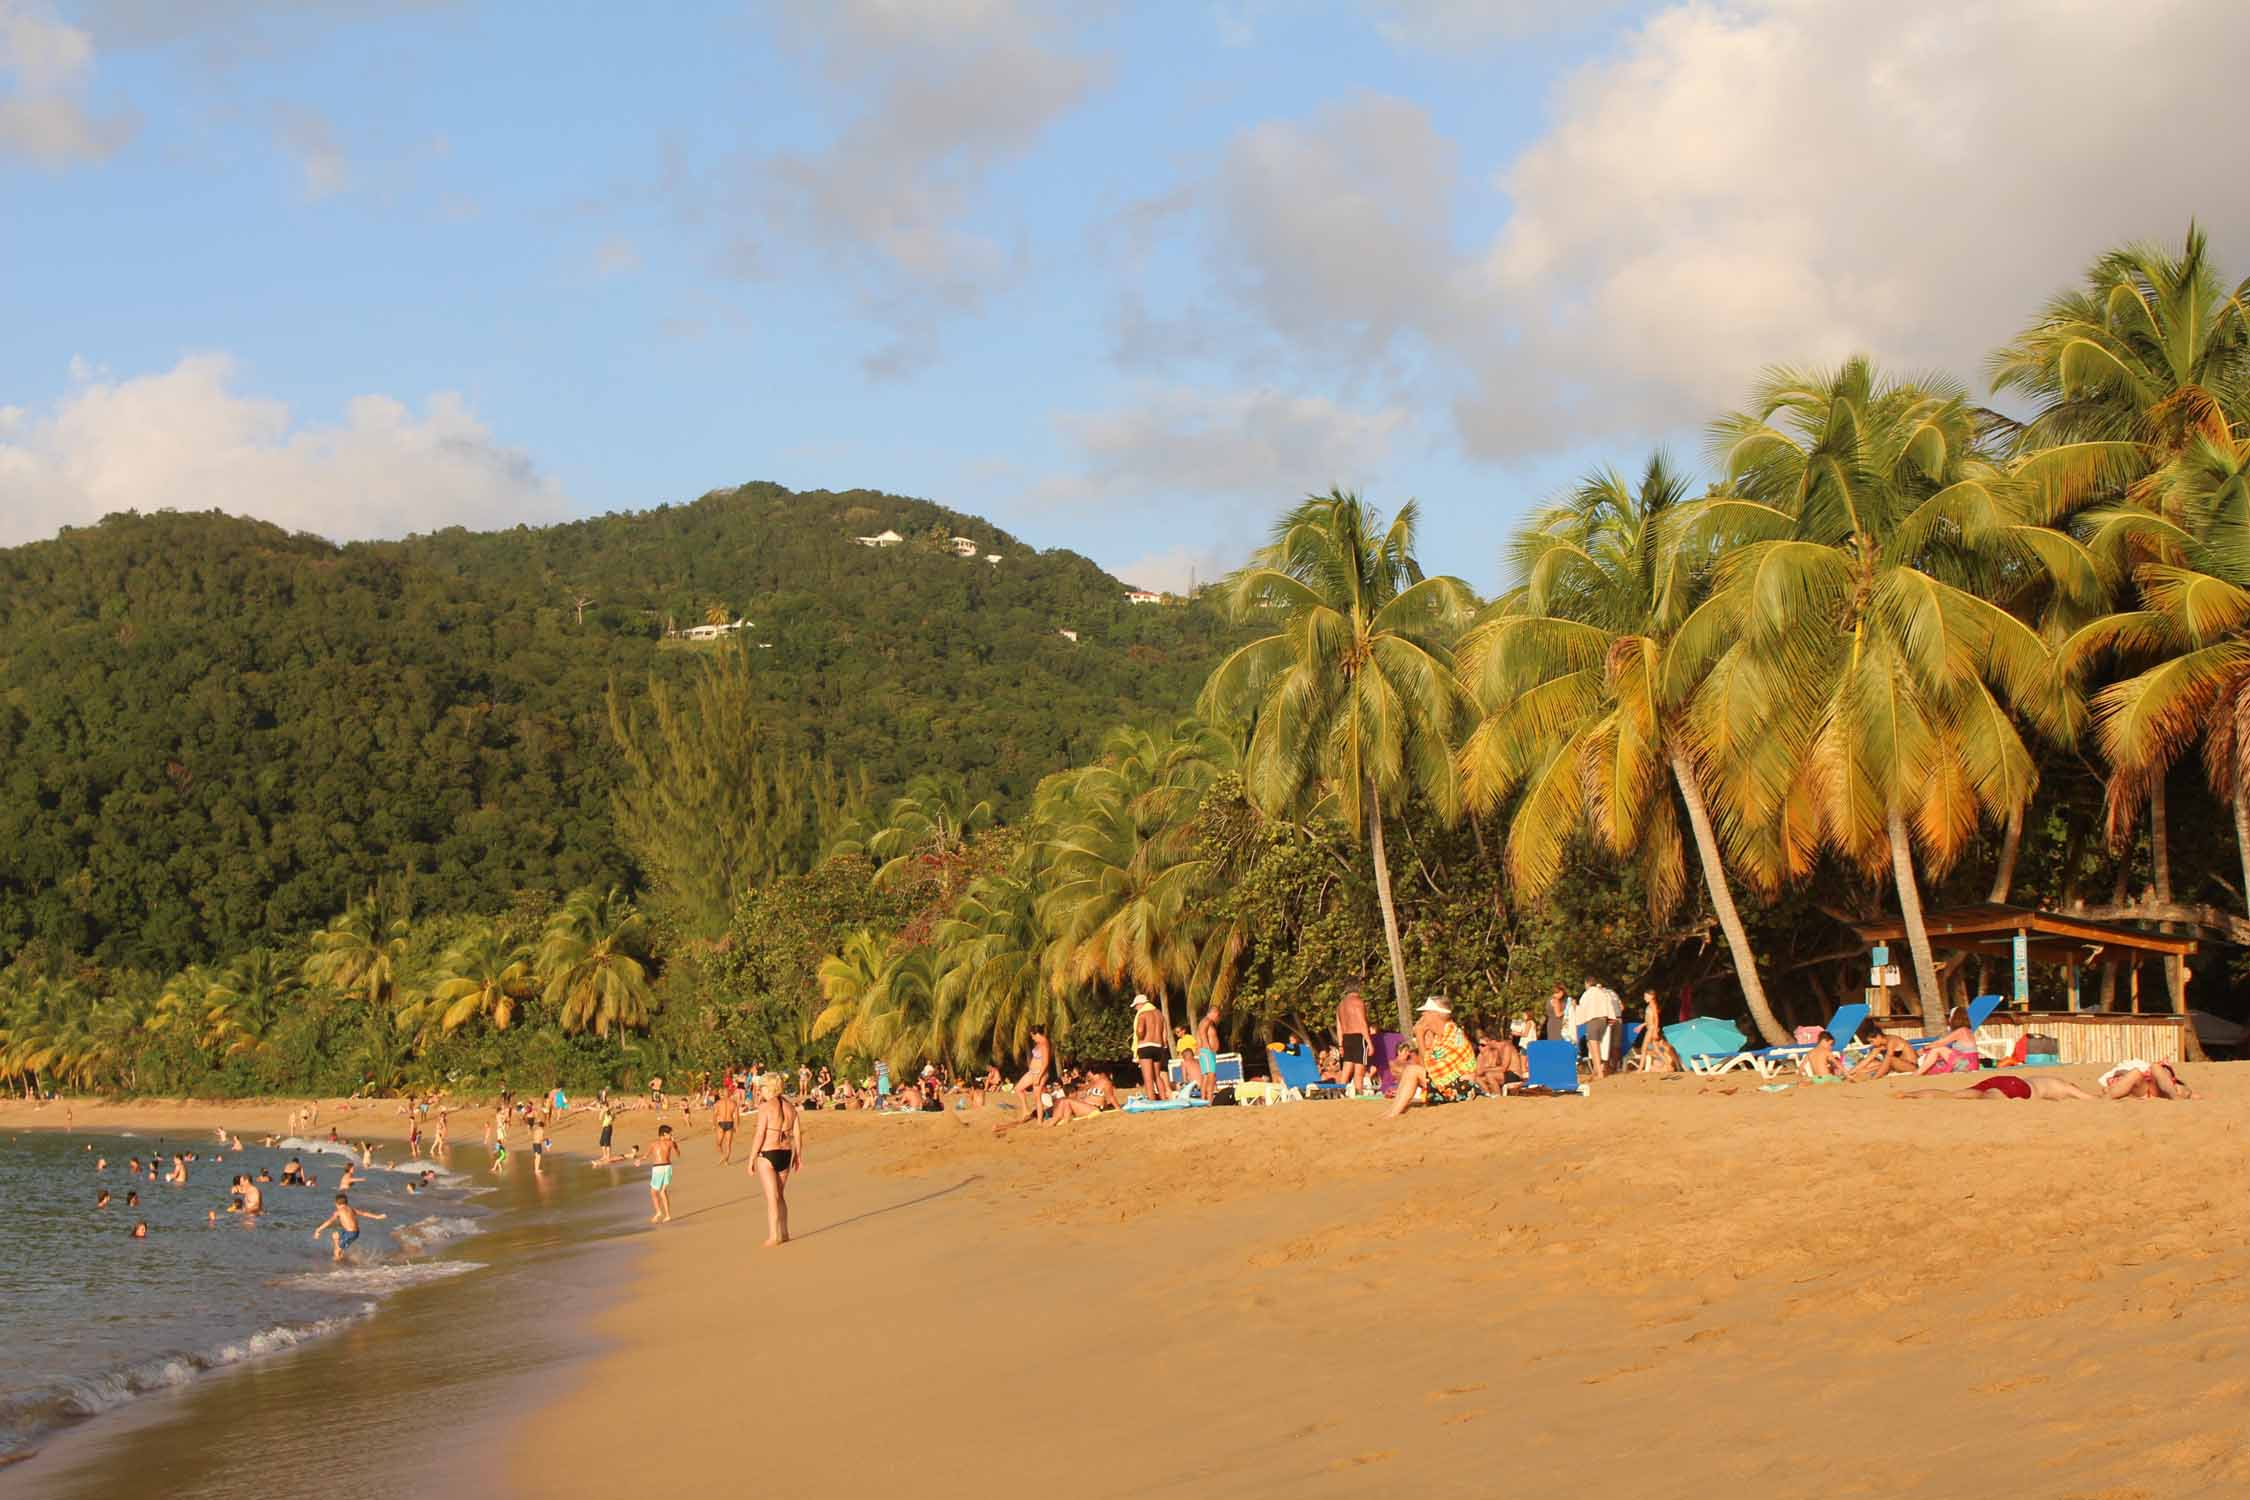 Deshaies, Grande-Anse beach, palm trees